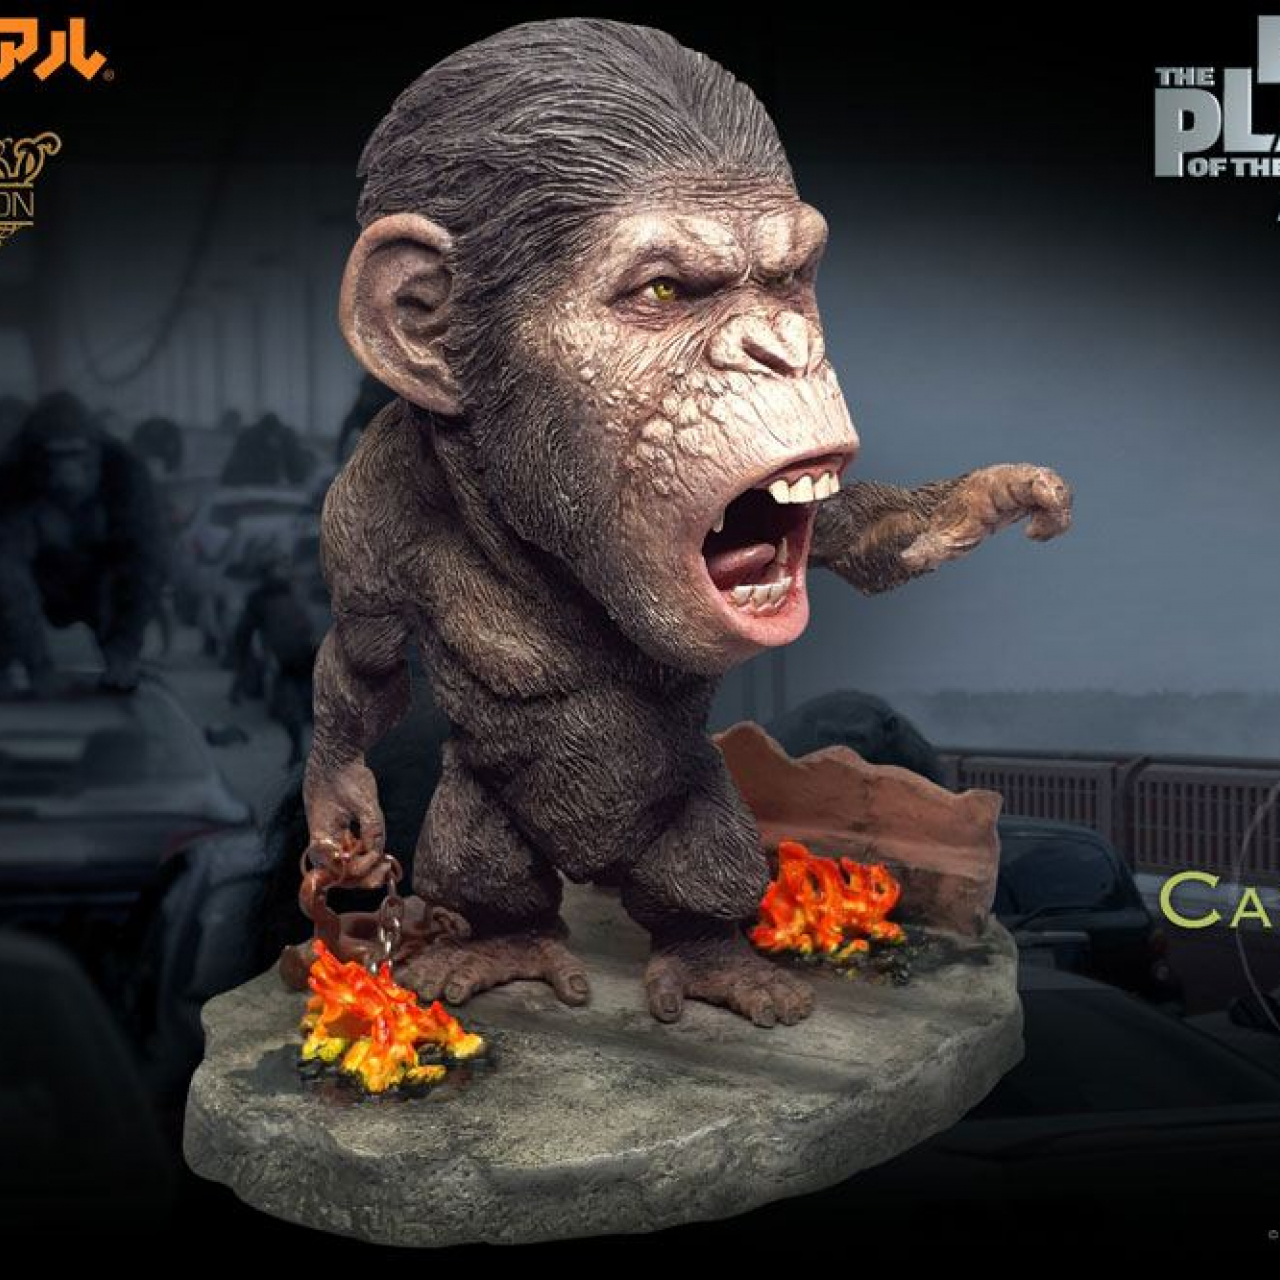 Rise of the Planet of the Apes Deform Real Series Soft Vinyl Statue Caesar Chain Ver. Deluxe 15 cm